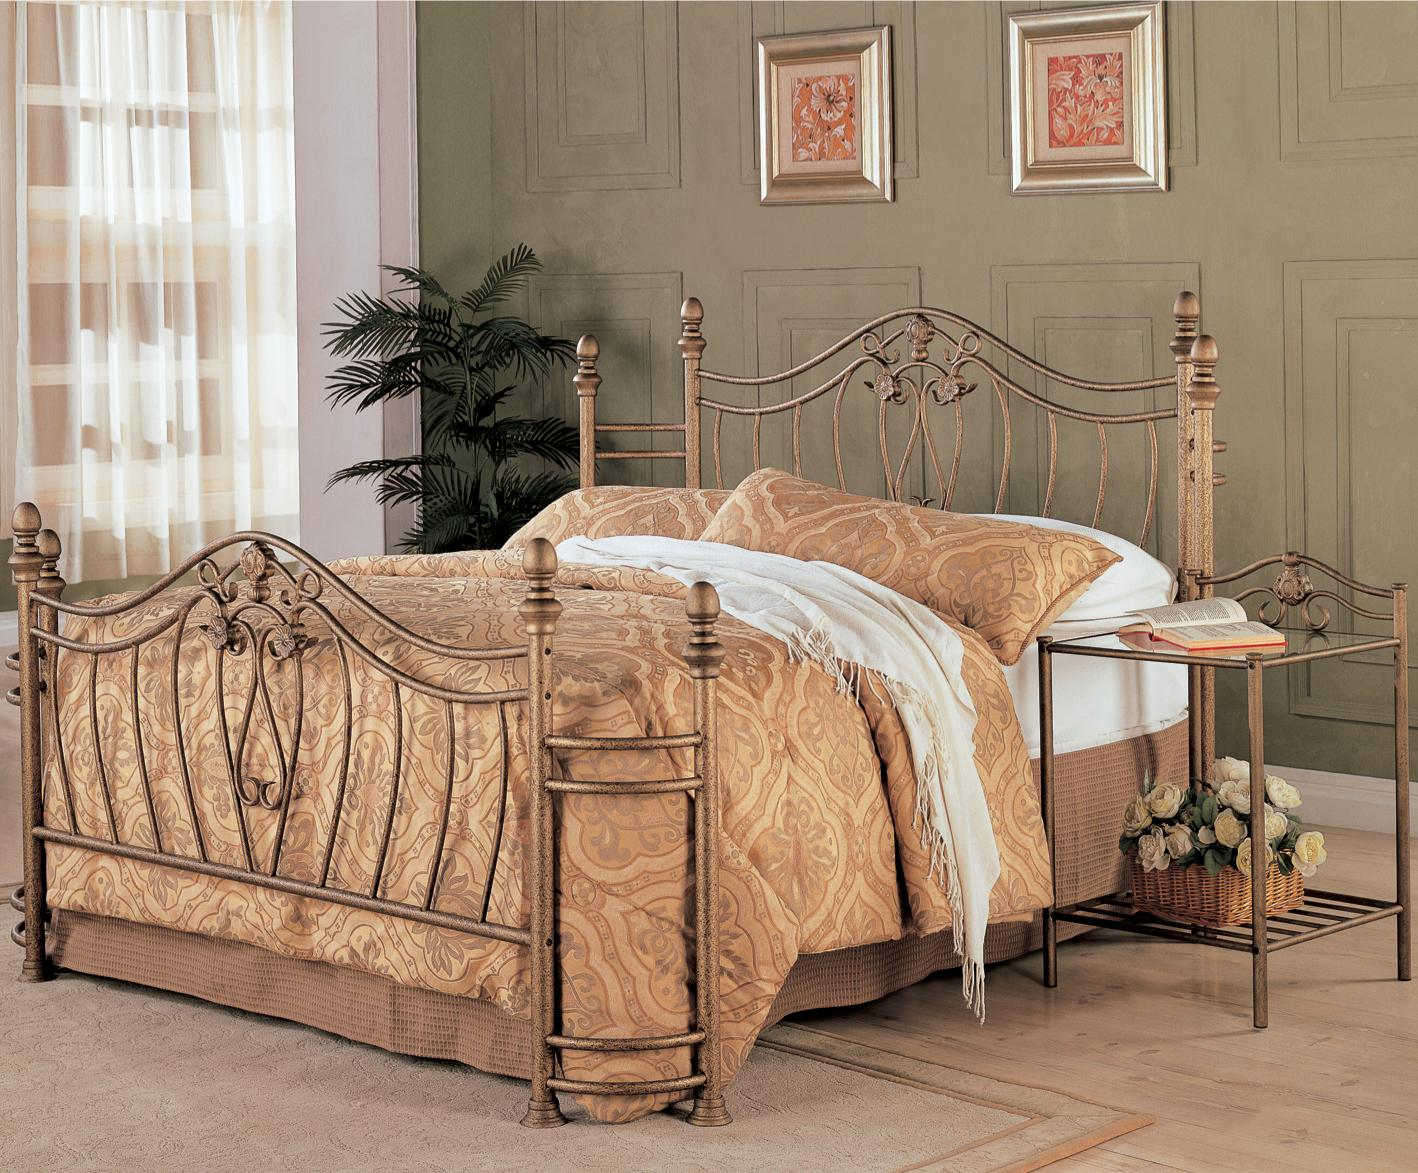 Coaster Sydney Queen Iron Bed | Northeast Factory Direct | Panel ...